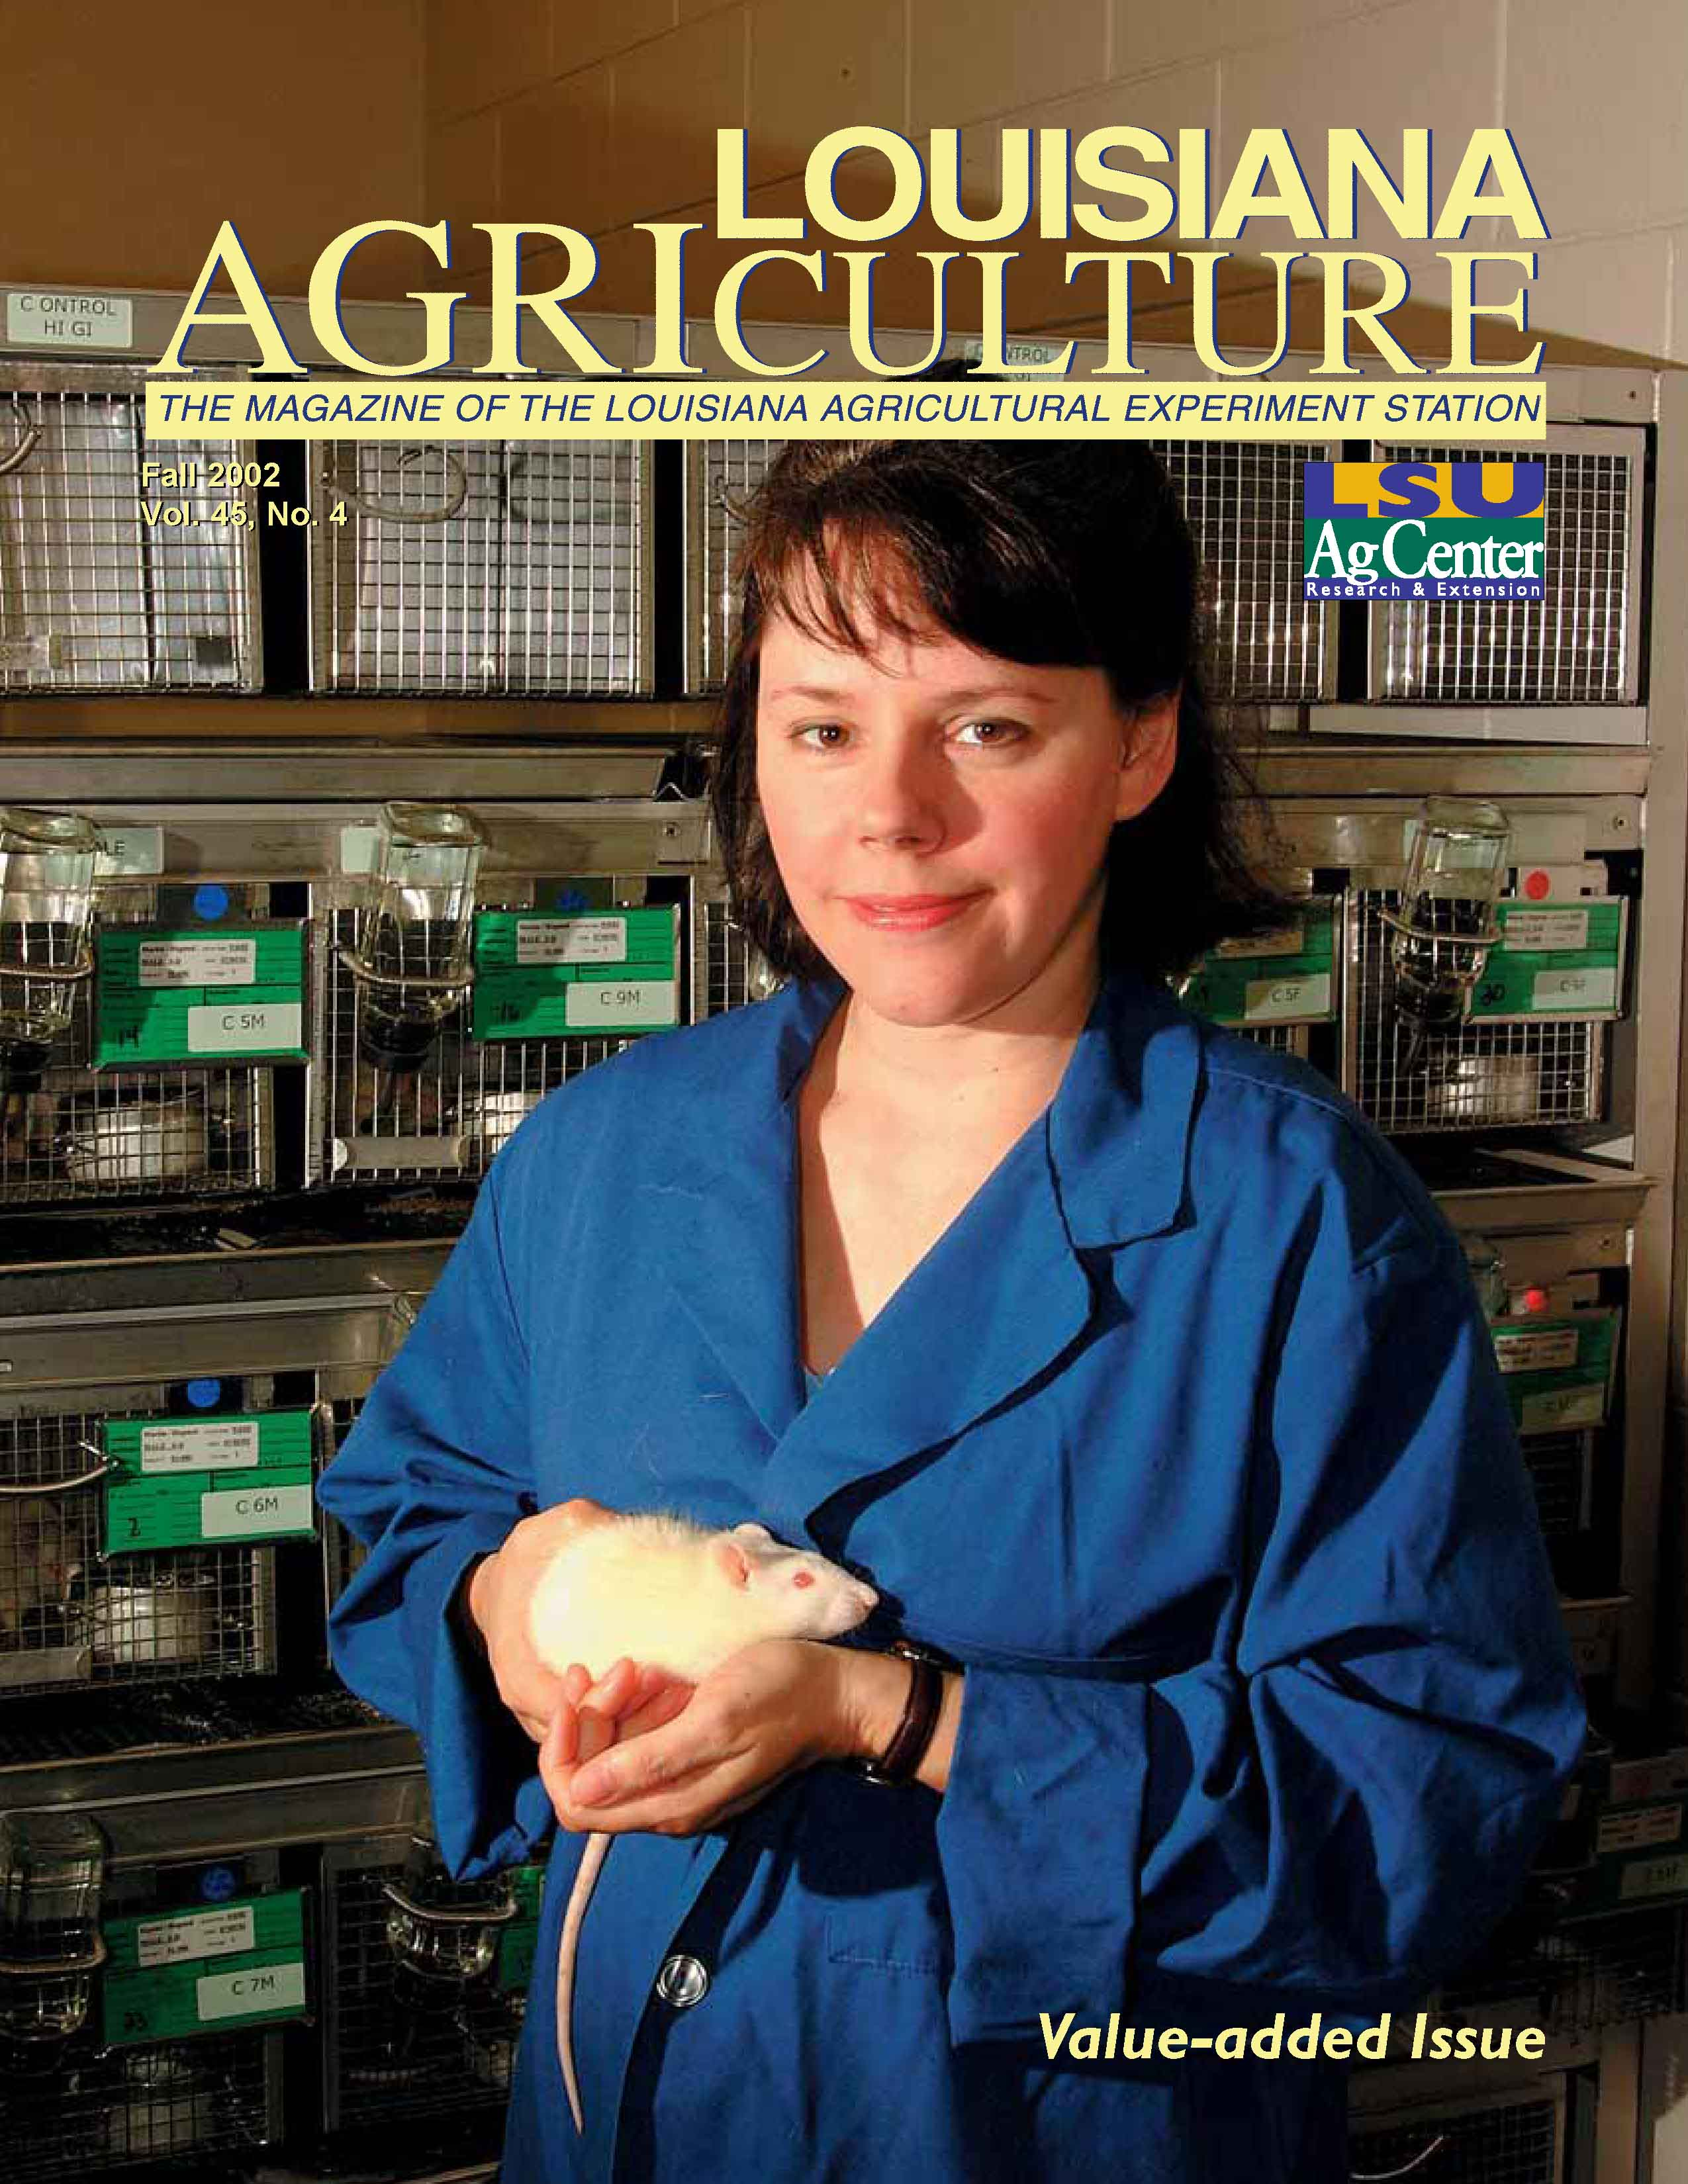 Louisiana Agriculture Magazine Fall 2002